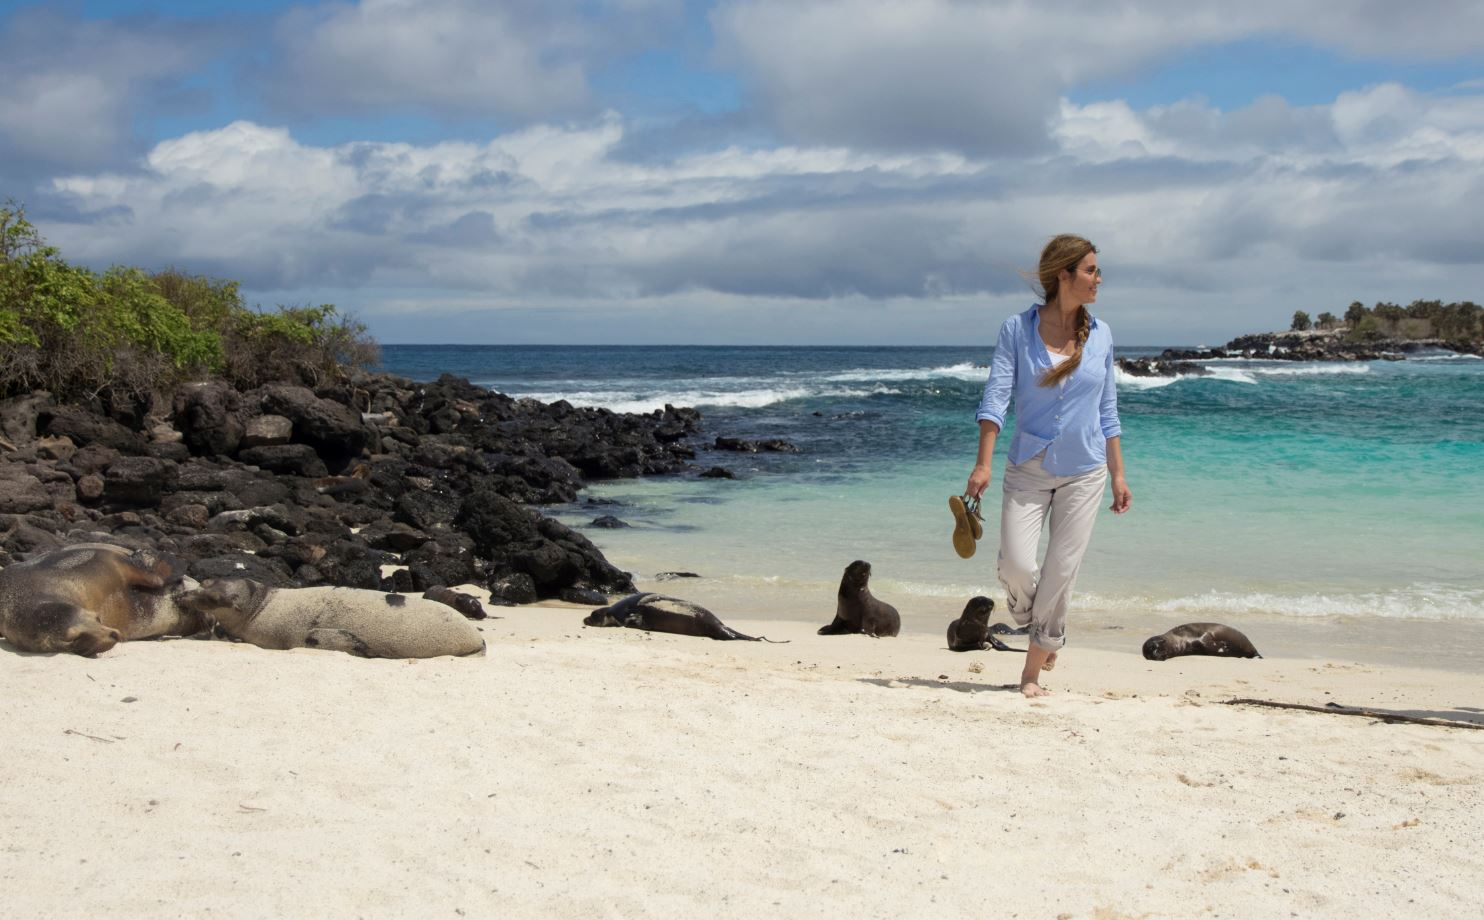 Woman on a beach in the Galapagos Islands